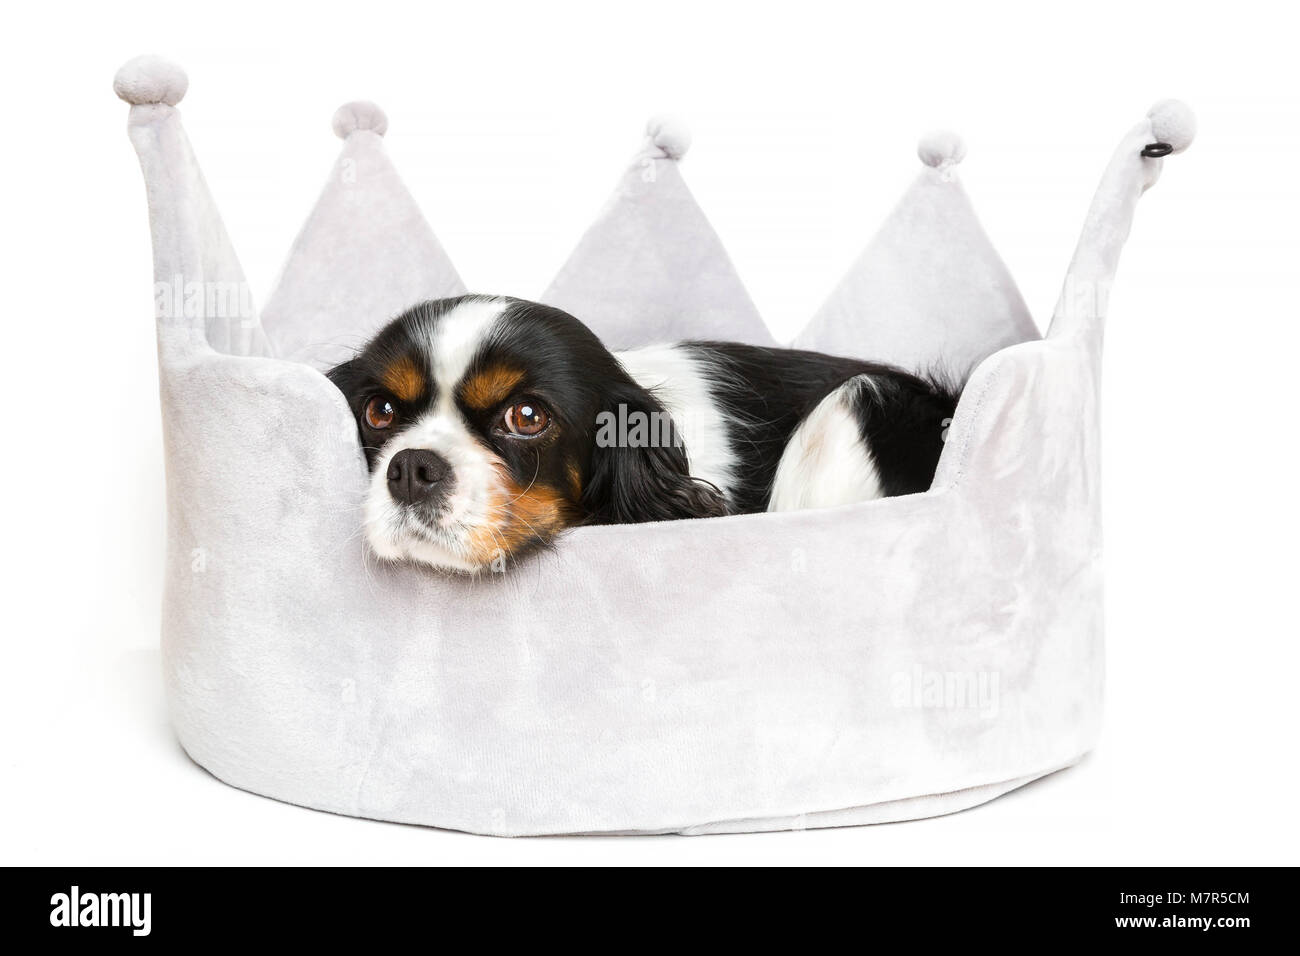 Cute dog resting in comfortable bed, isolated on white background - Stock Image